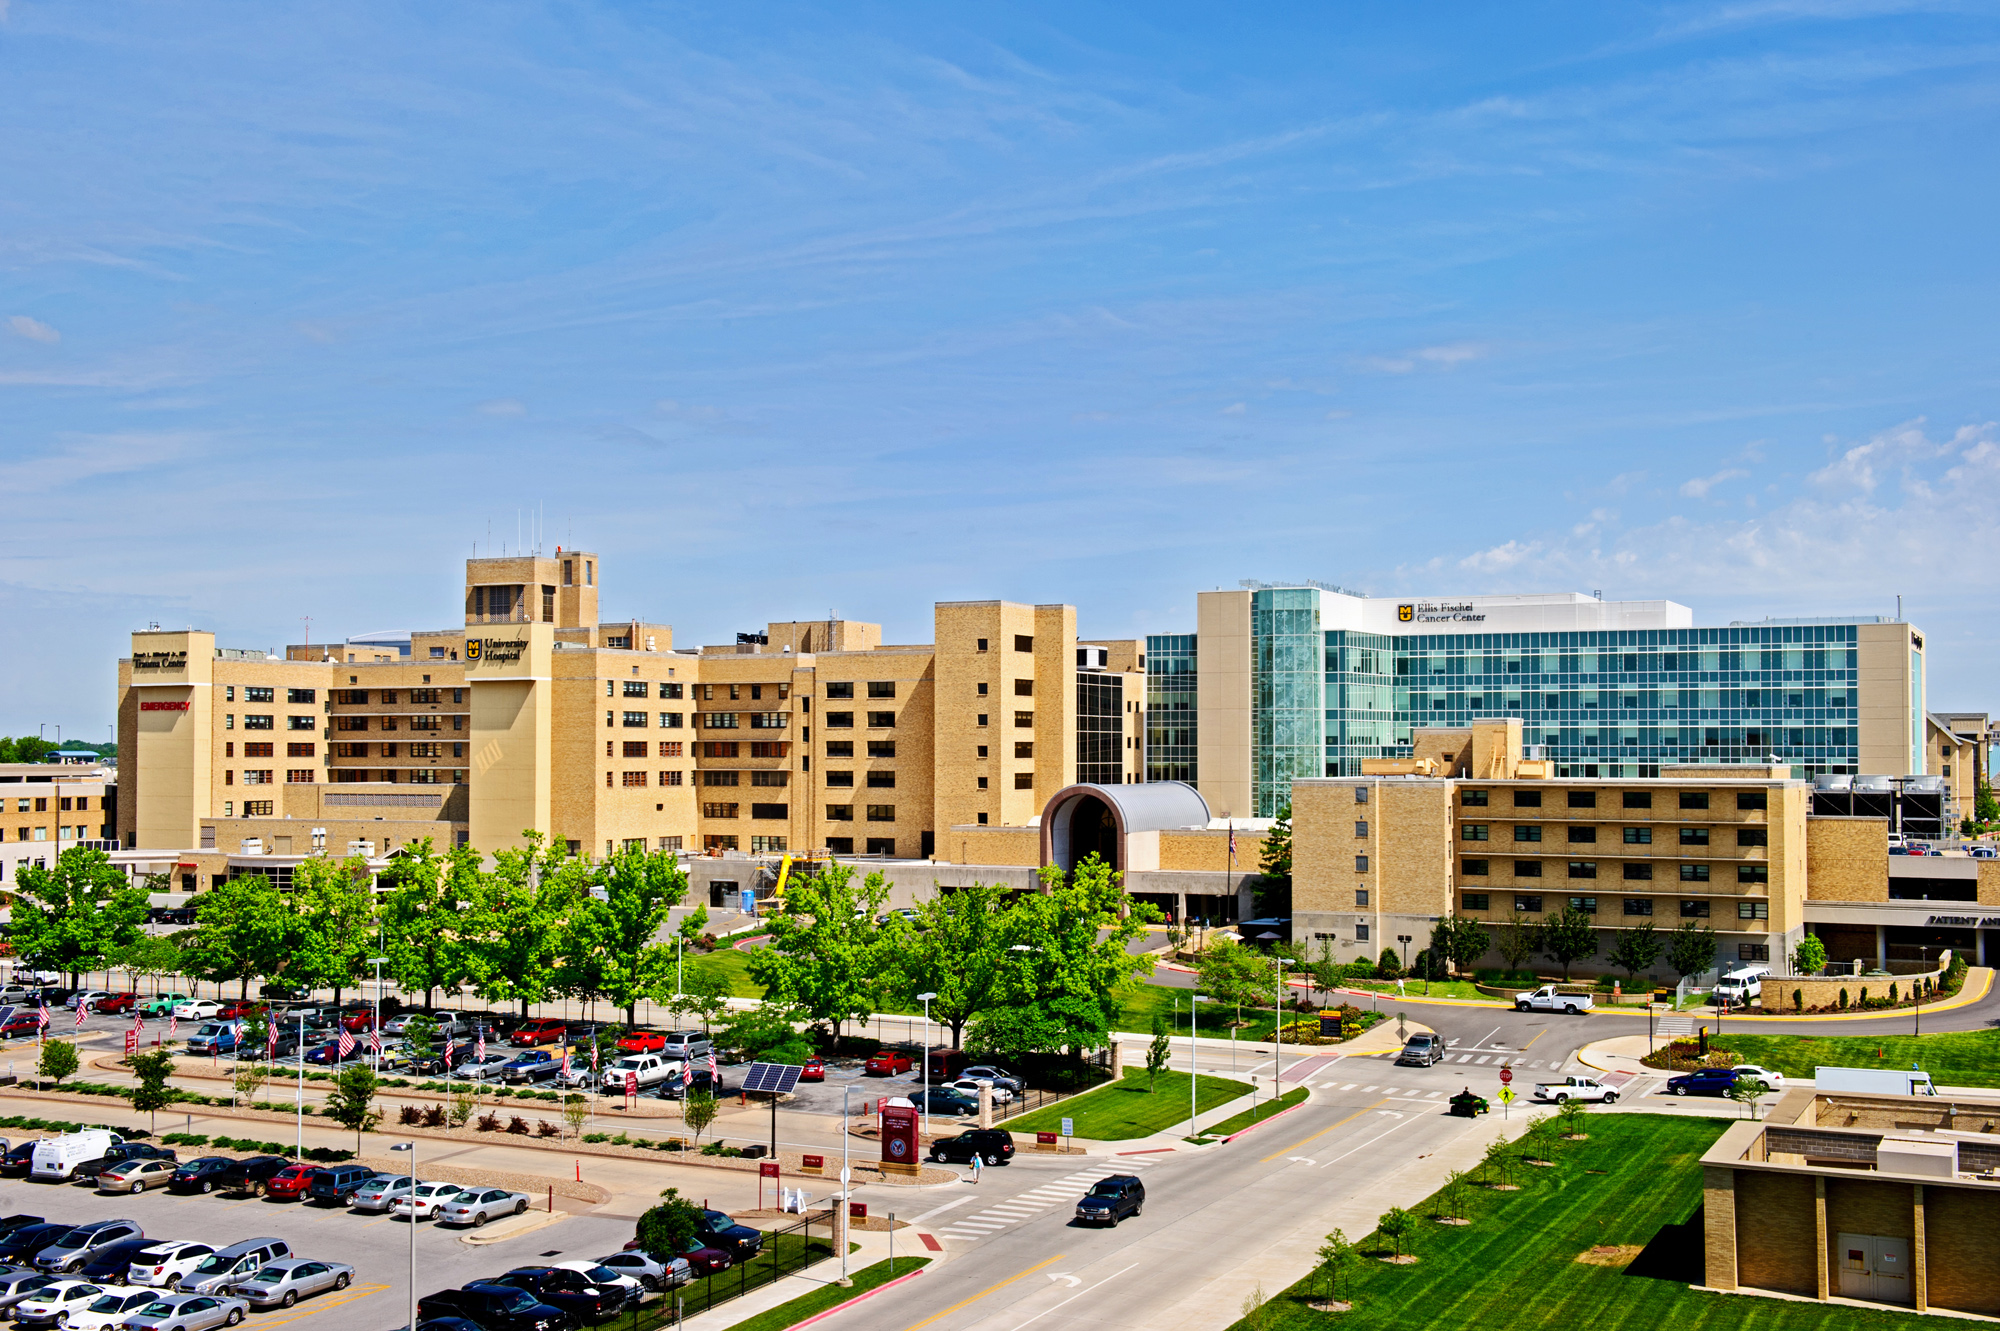 University of Missouri Health Care—Mayo Medical Laboratories Collaboration Will Benefit Patients, Providers